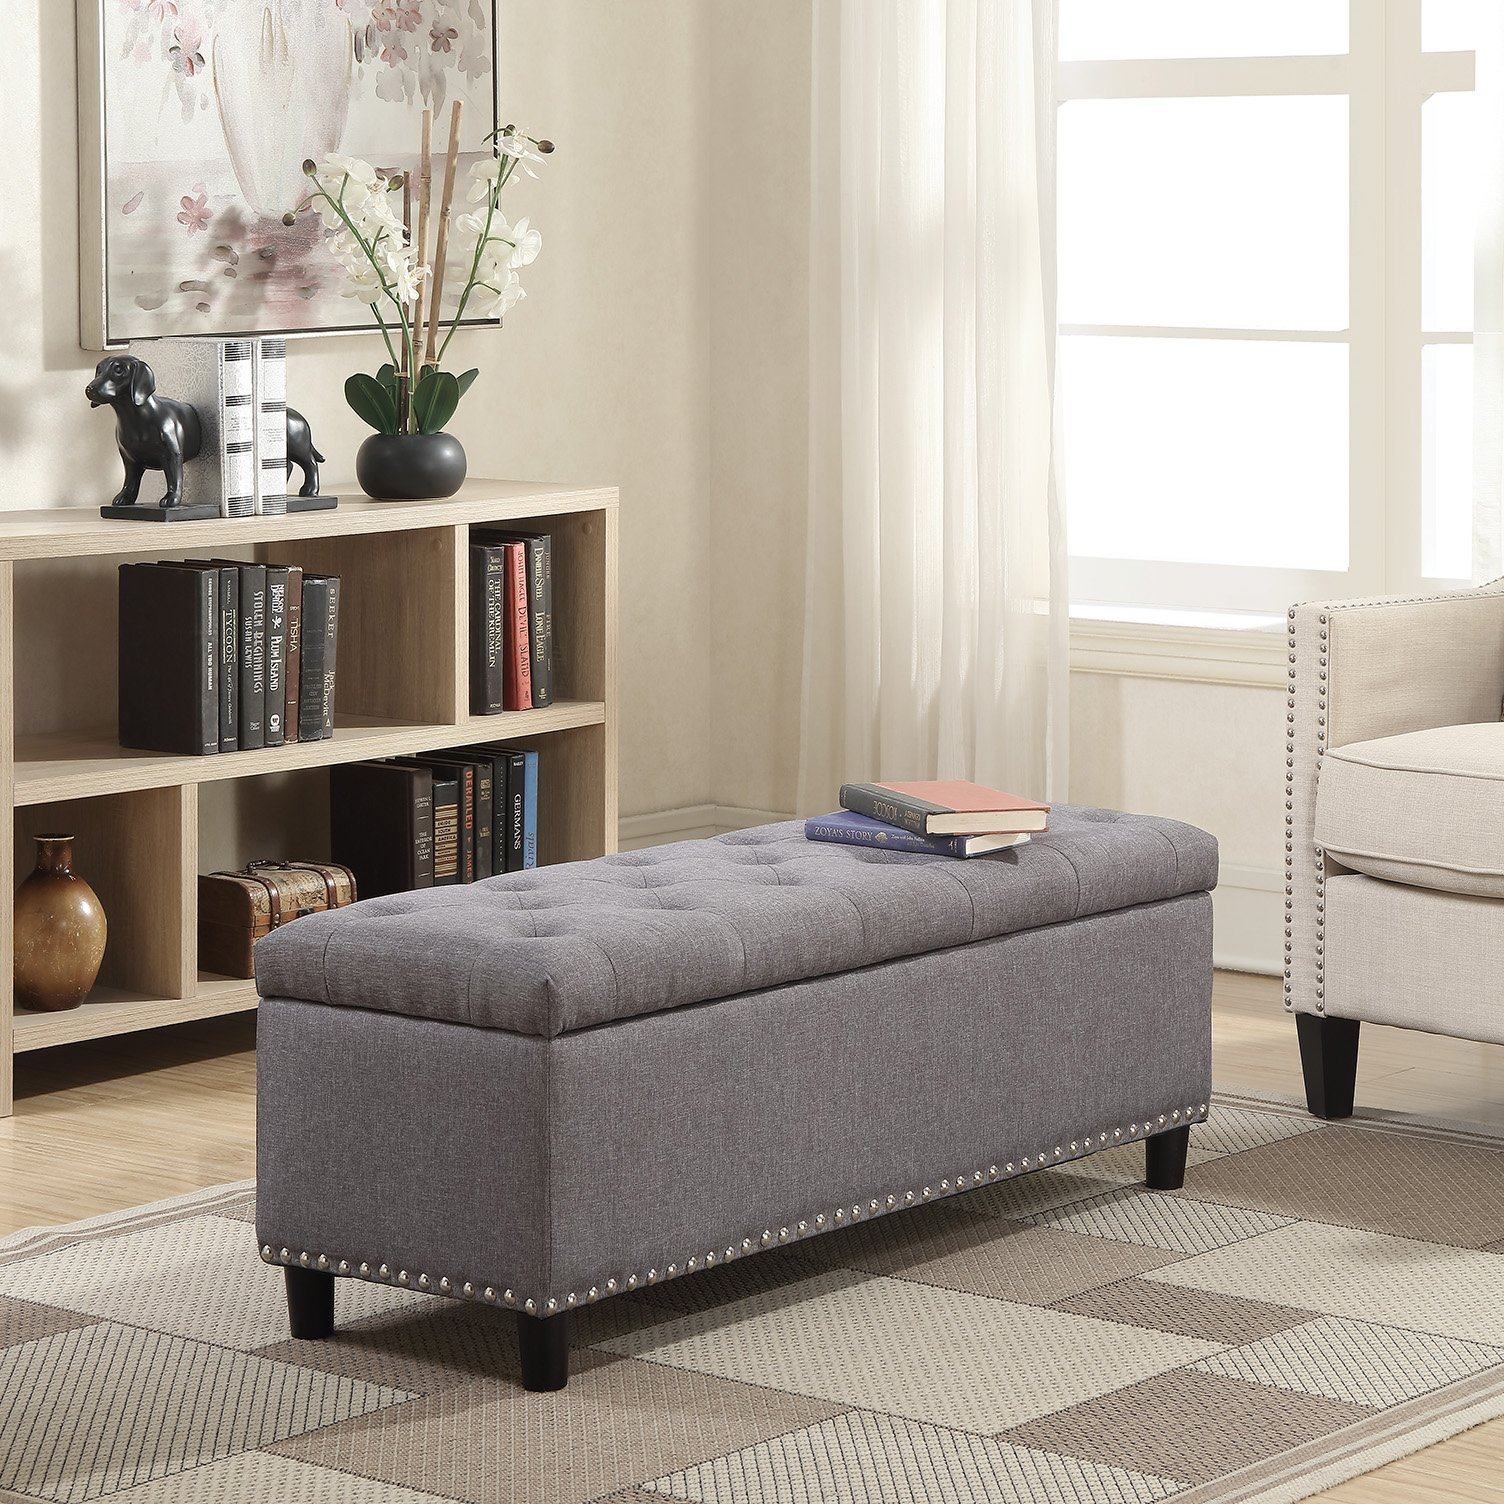 Belleze 48'' Rectangular Gray Storage Fabric Ottoman Bench Tufted Footrest Lift Top by Belleze